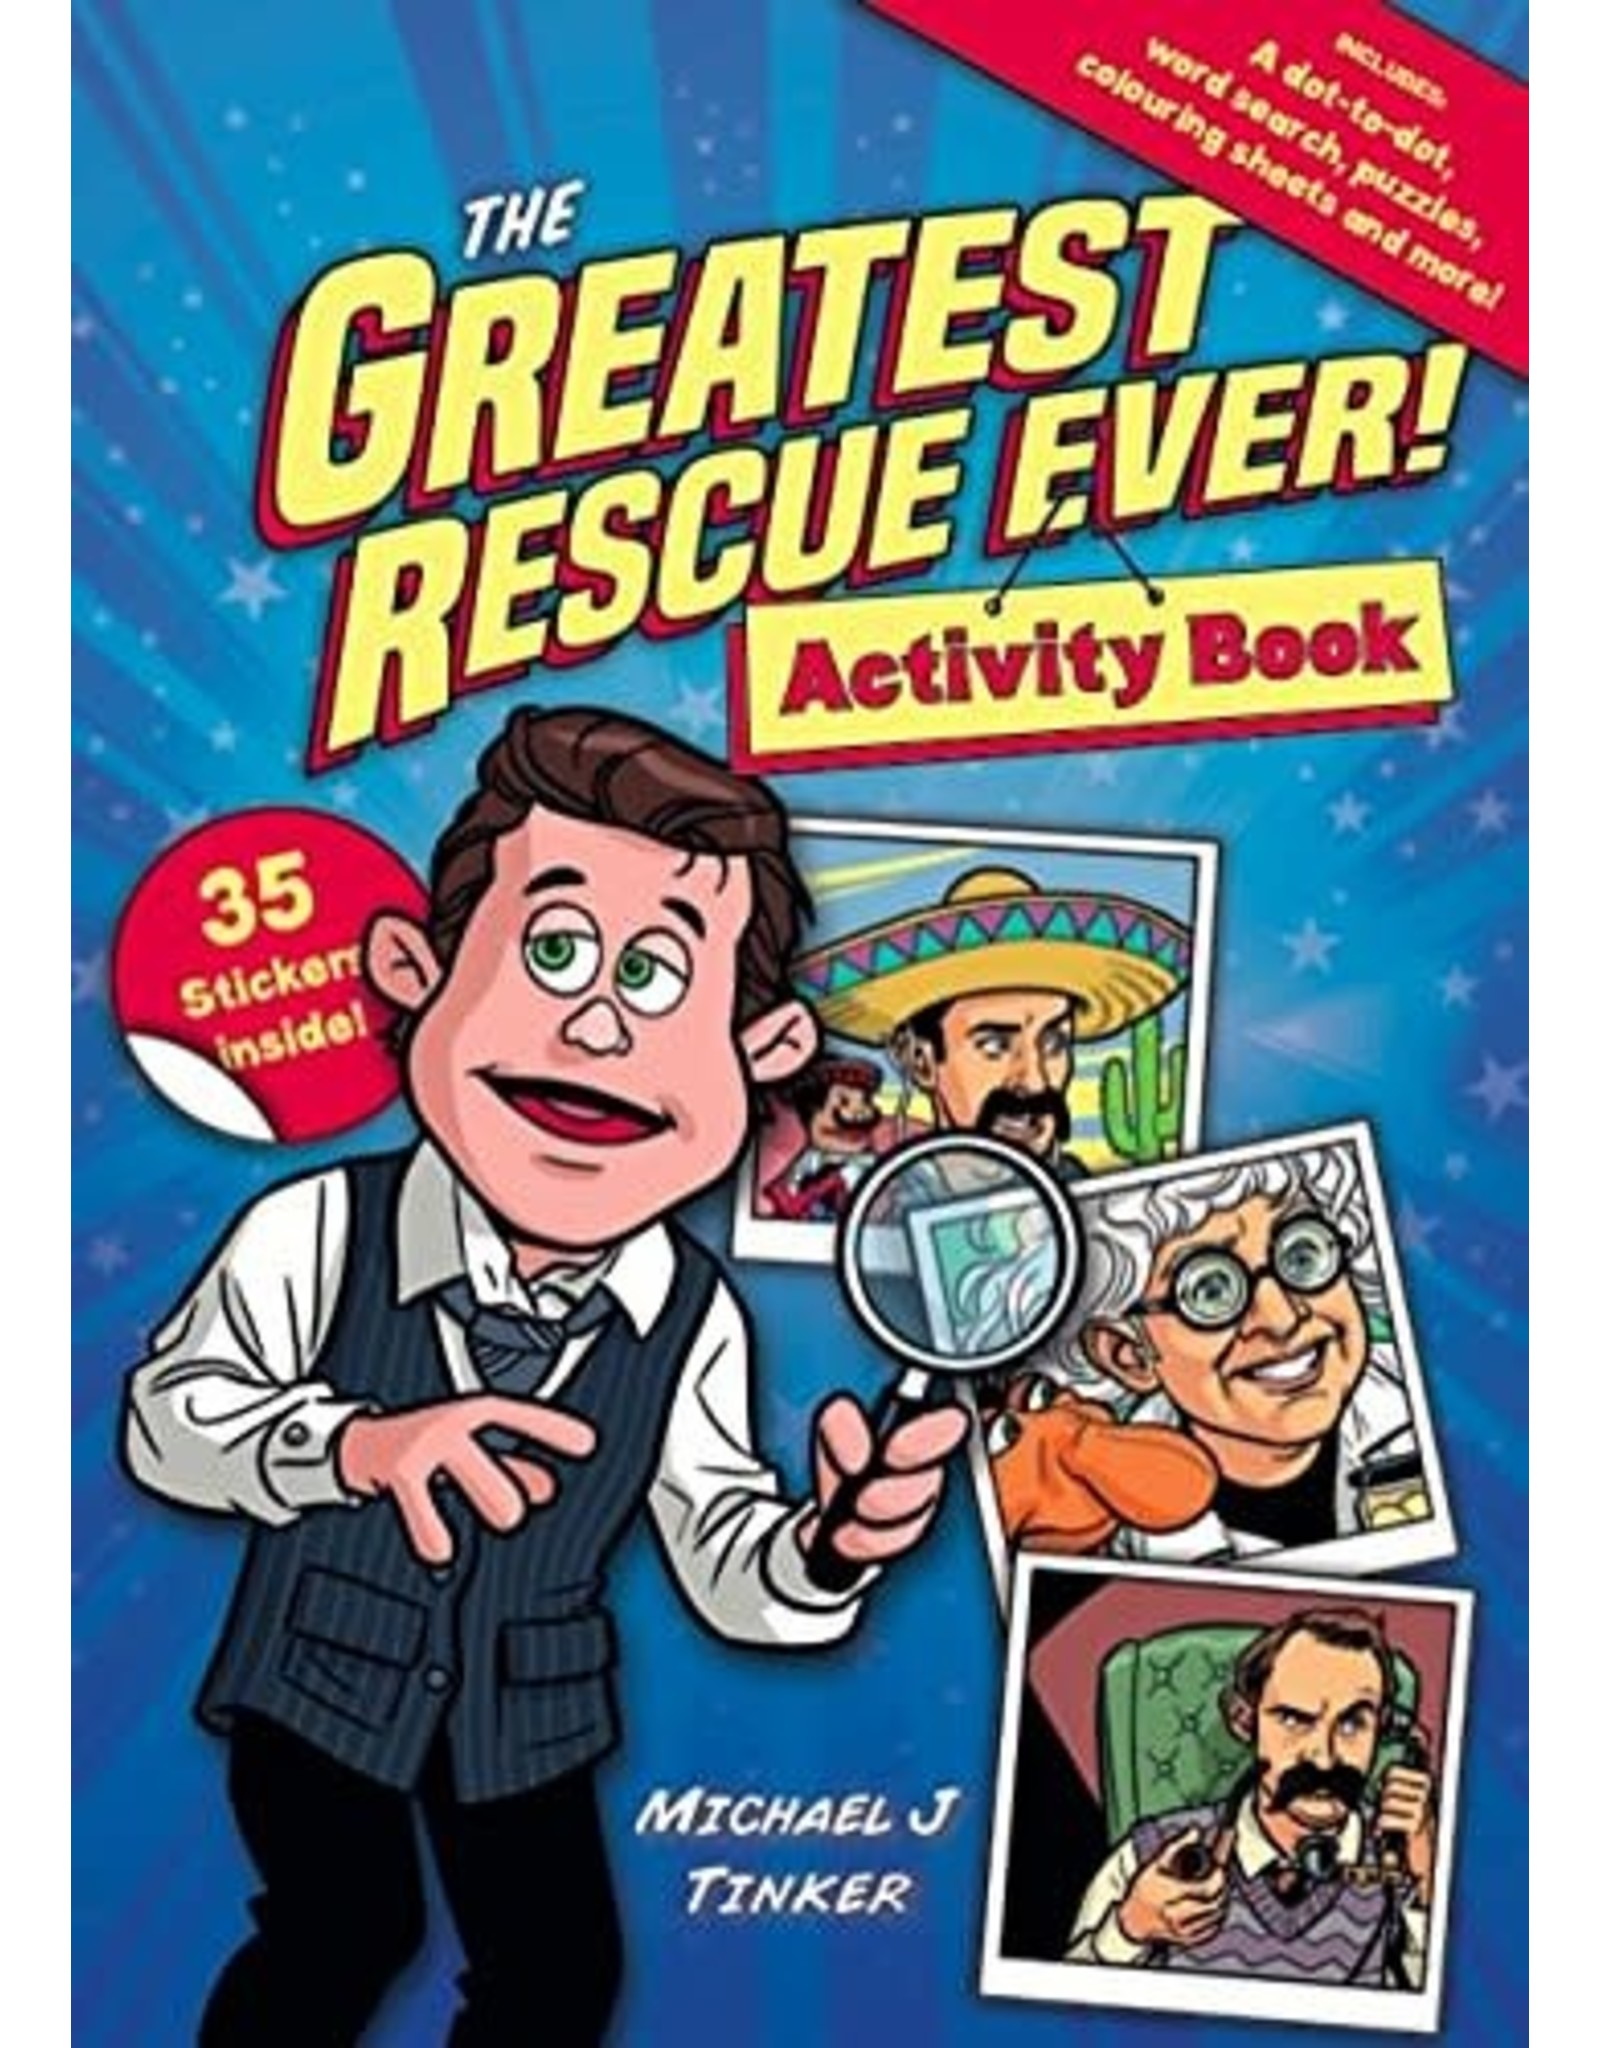 10ofThose / 10 Publishing The Greatest Rescue Ever! Activity Book